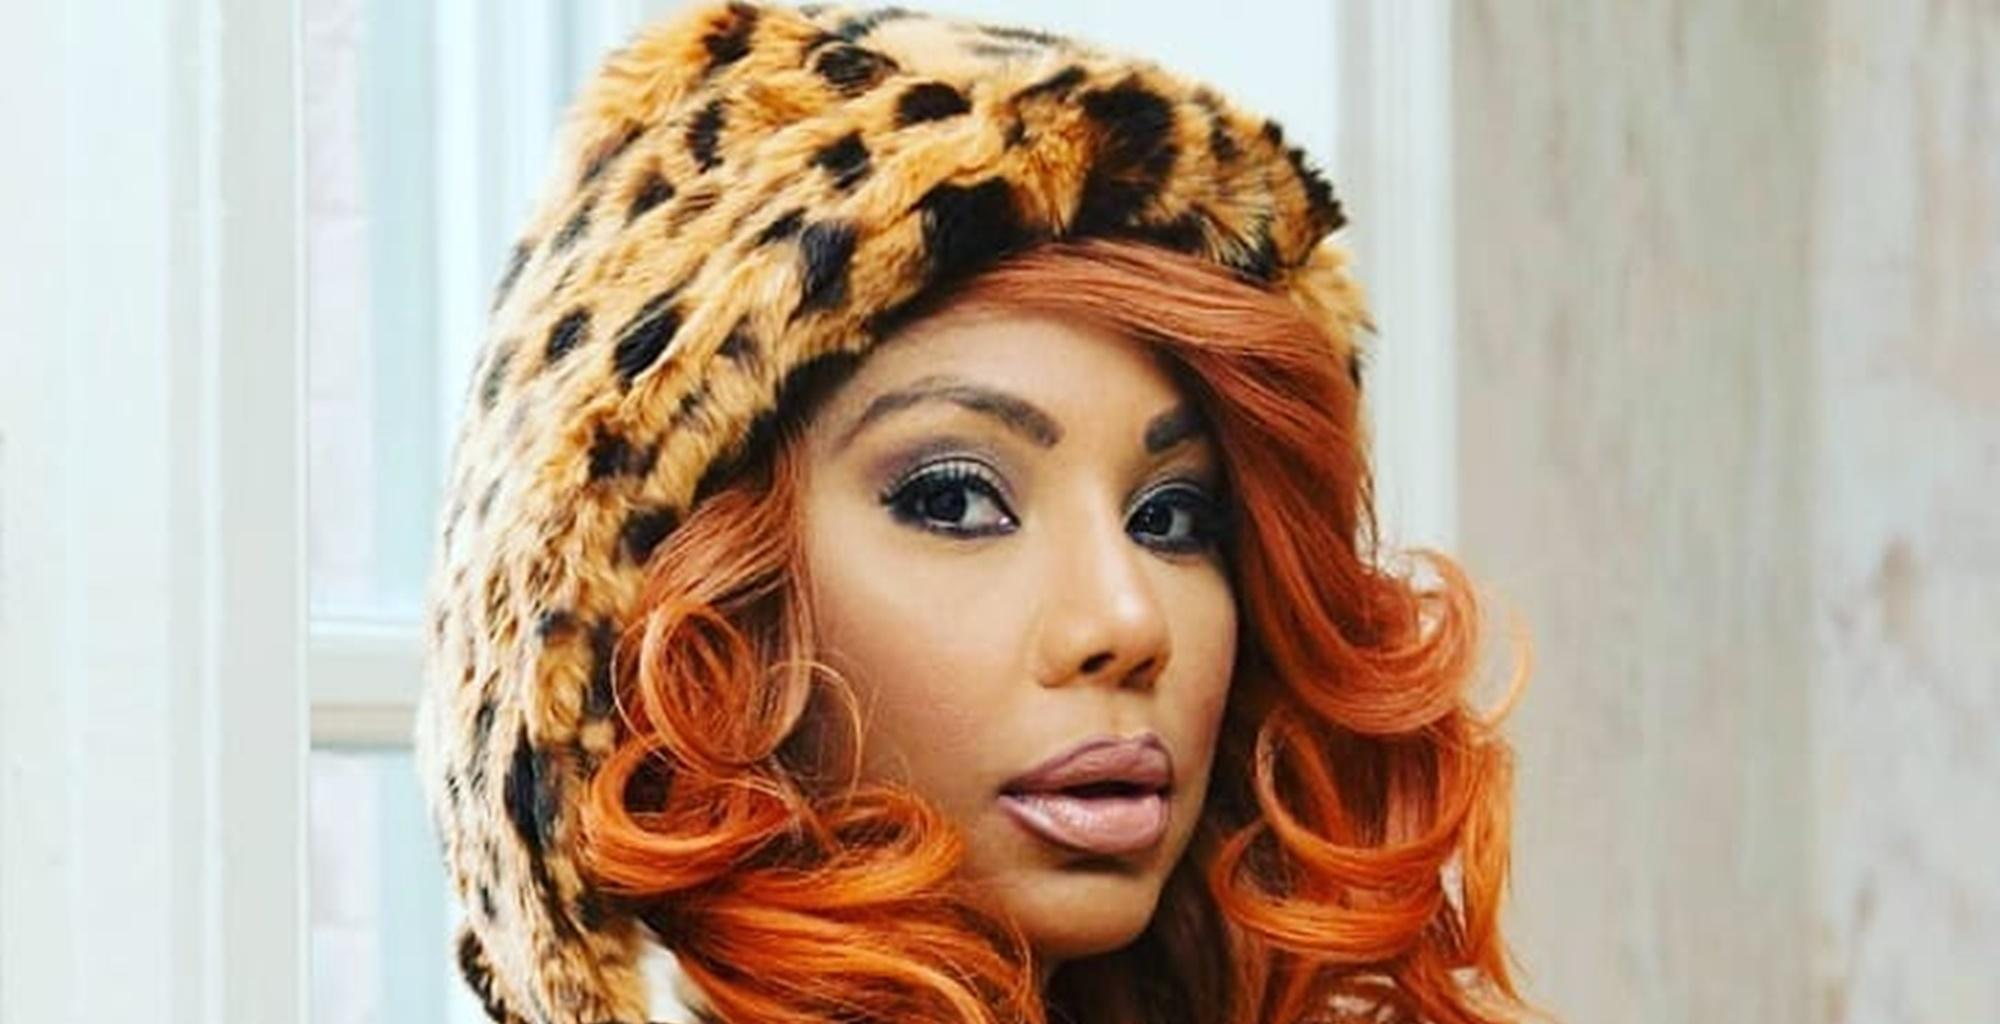 Tamar Braxton Reveals Her Strategy For Winning Celebrity Big Brother This Season - Watch Her Video